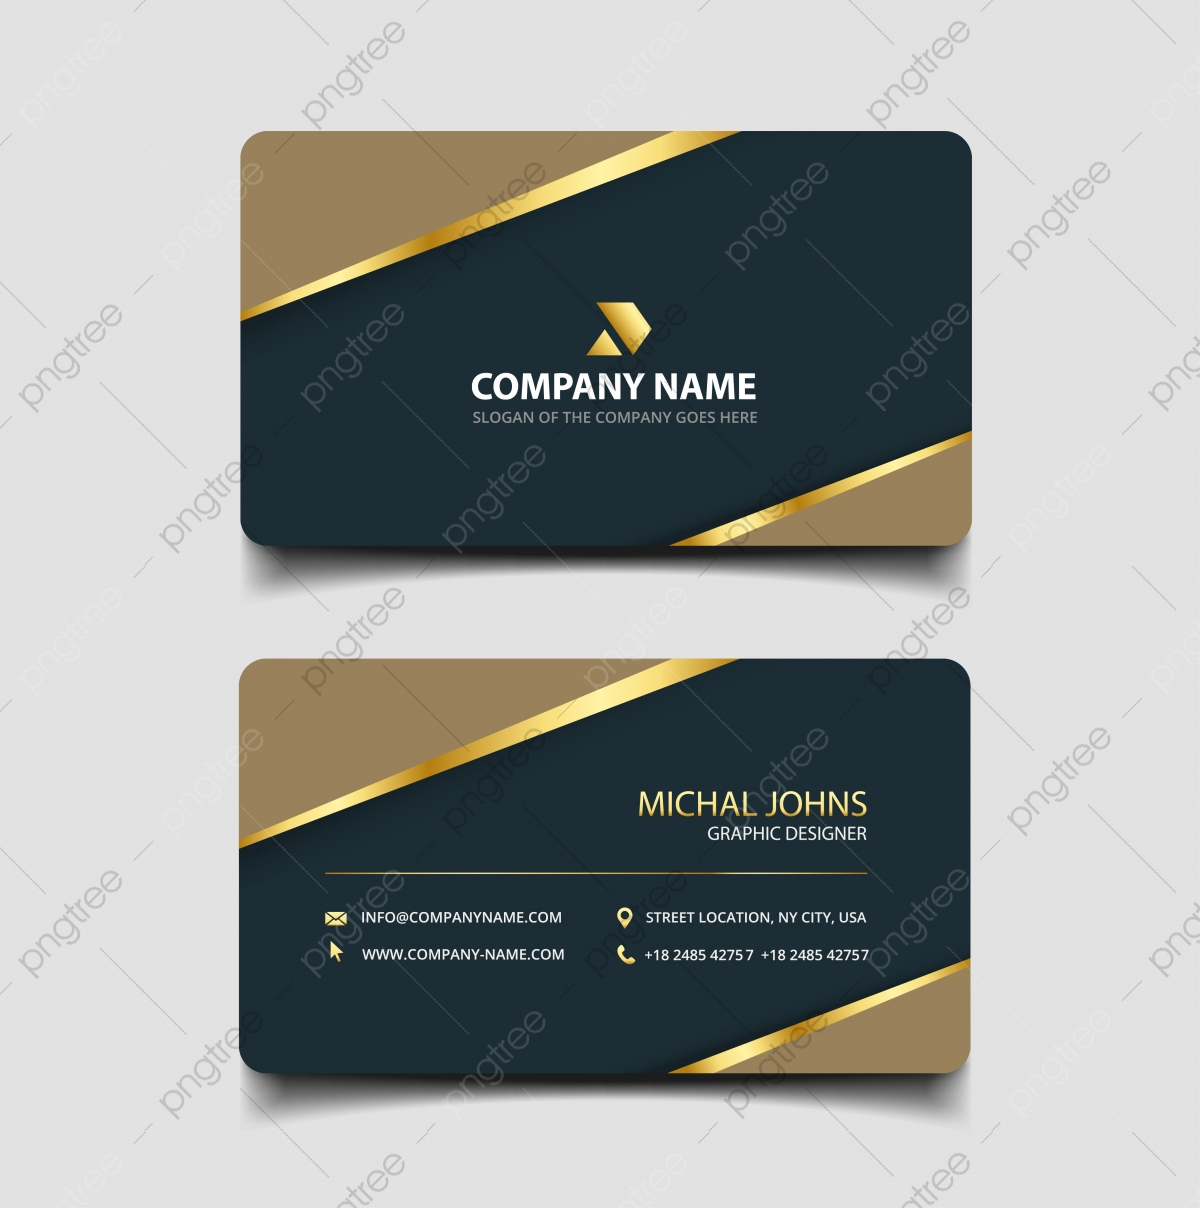 Luxury Business Card Design Template Template Download On Pngtree